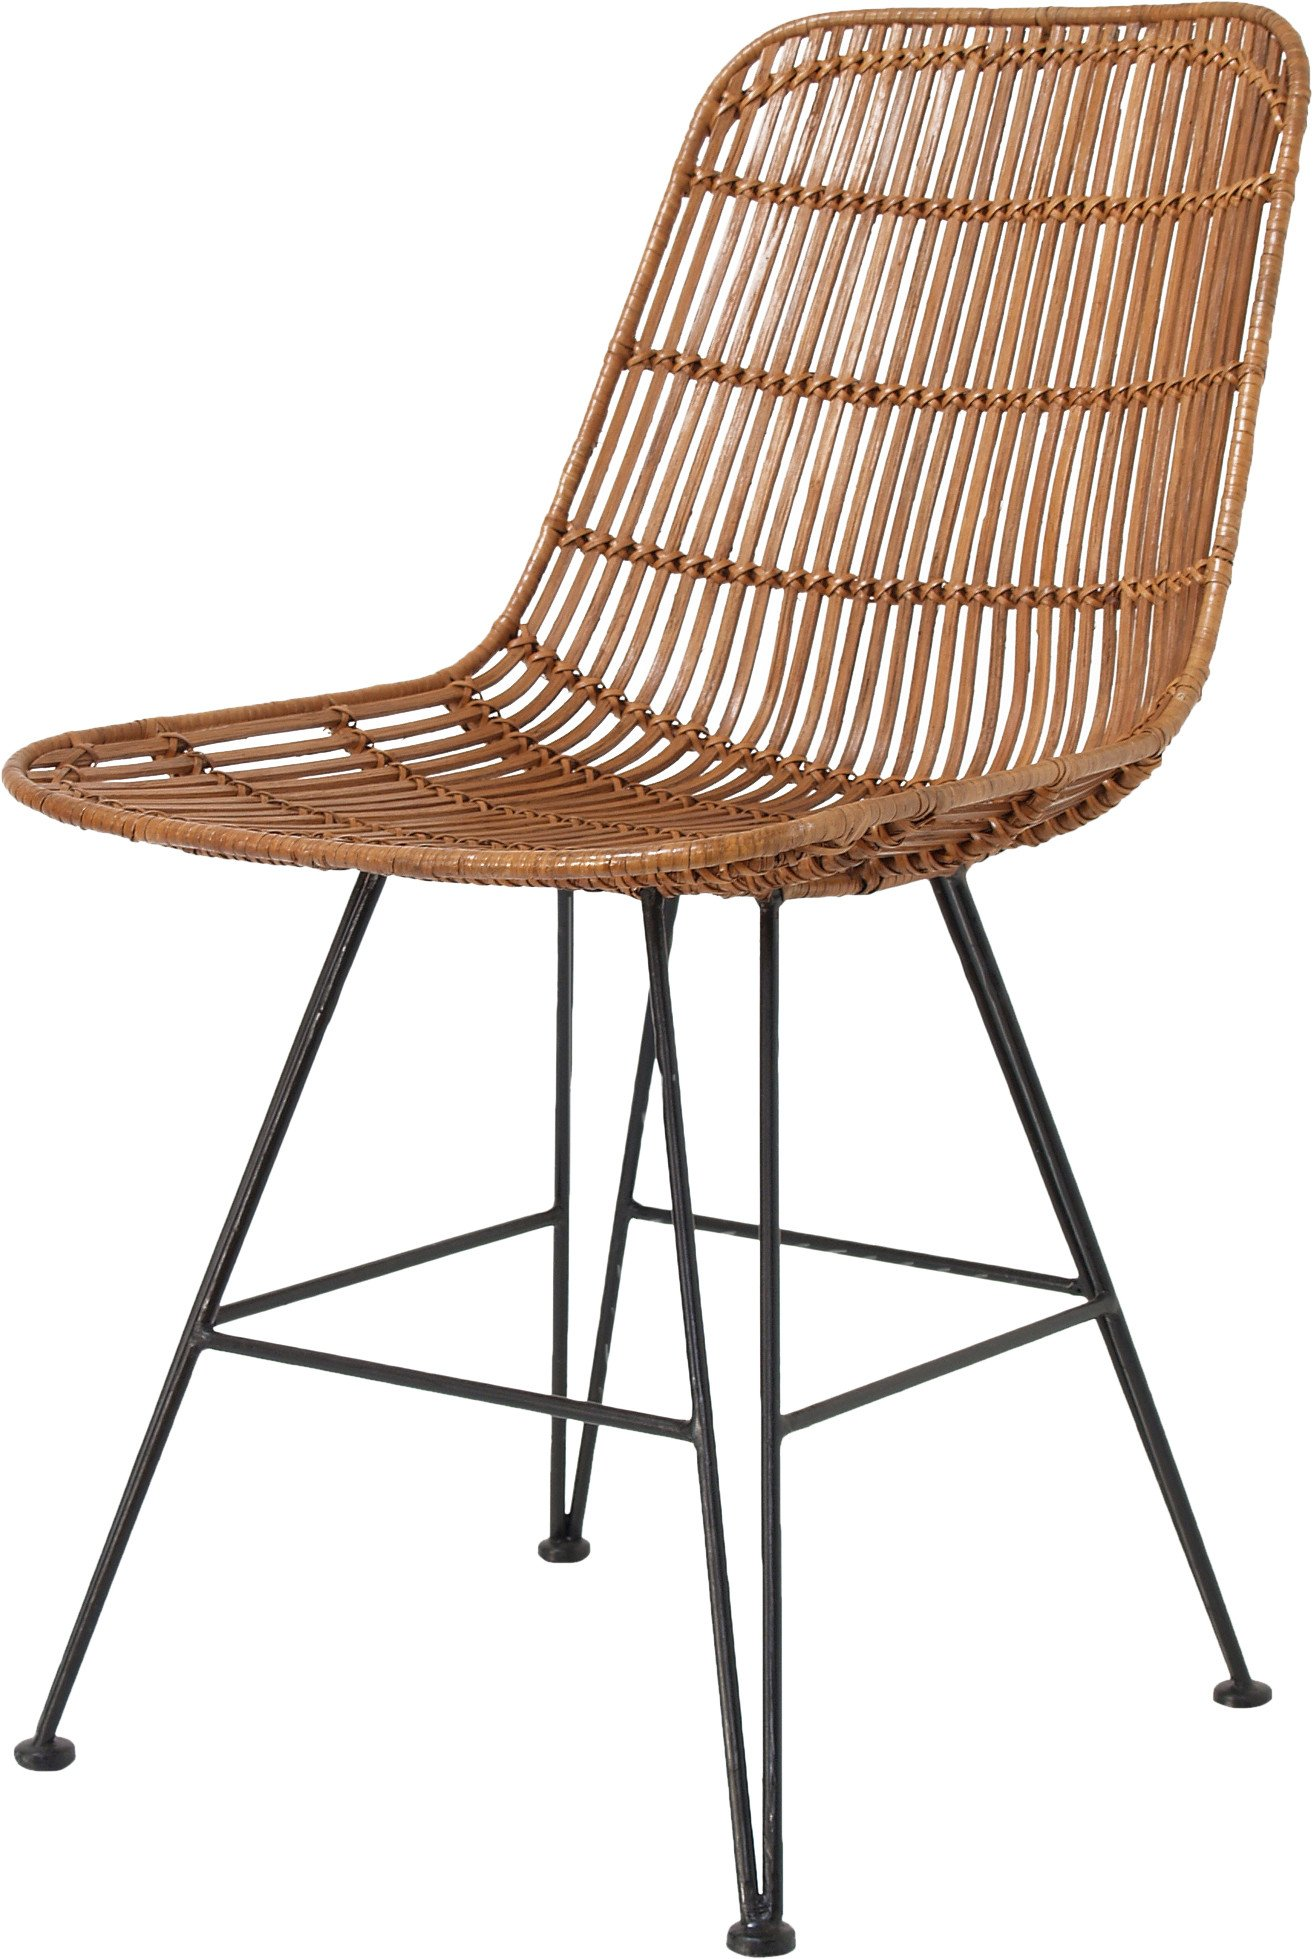 Rattan Chair, HKliving